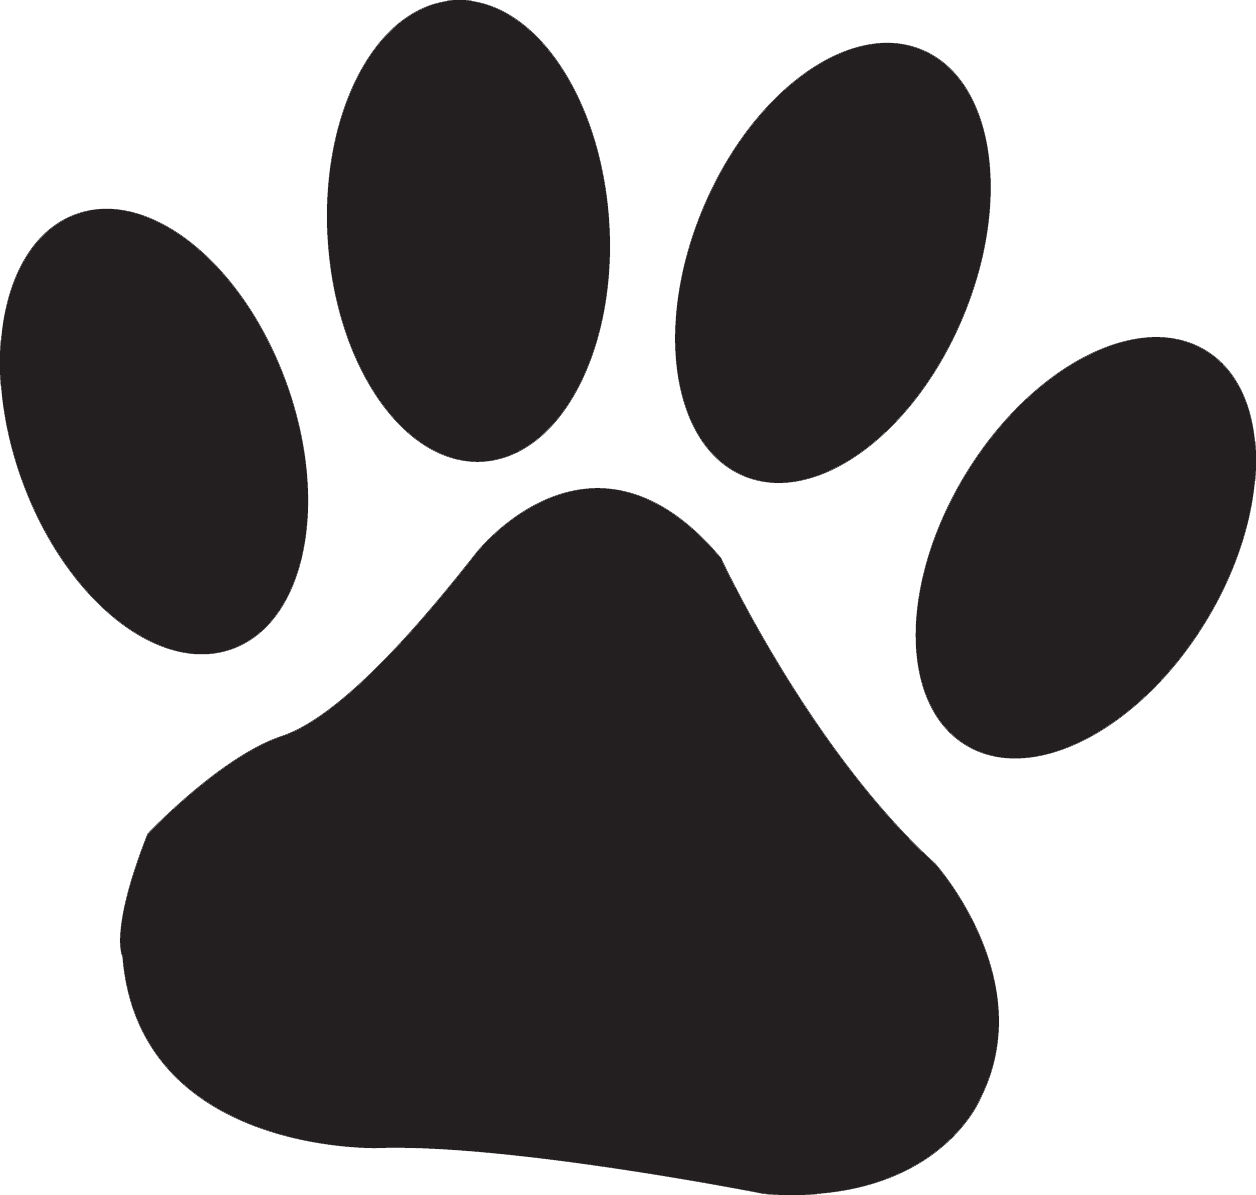 Wildcat clipart wolf claw. Free pawprints download clip